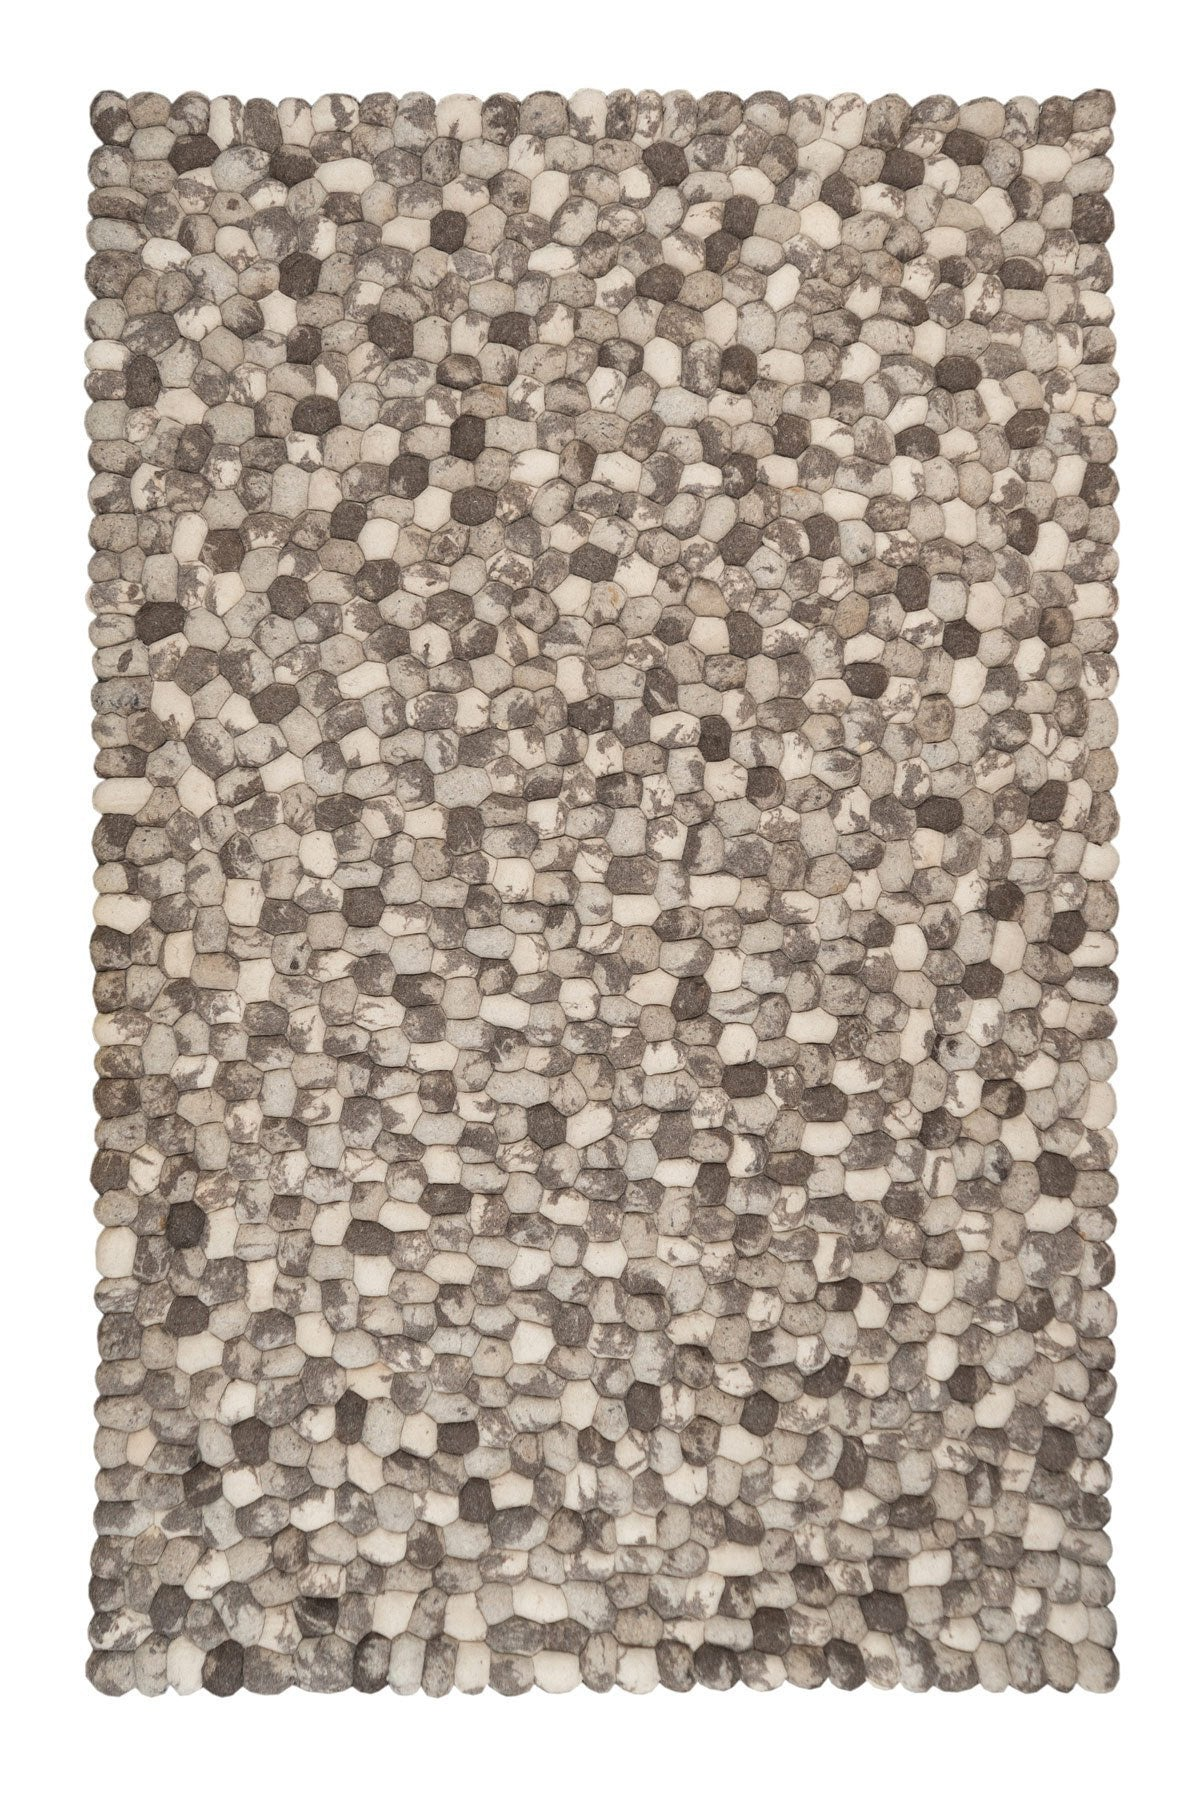 Gozo Stones Wool Rug, Grey Shades - greendecore.co.uk - 3